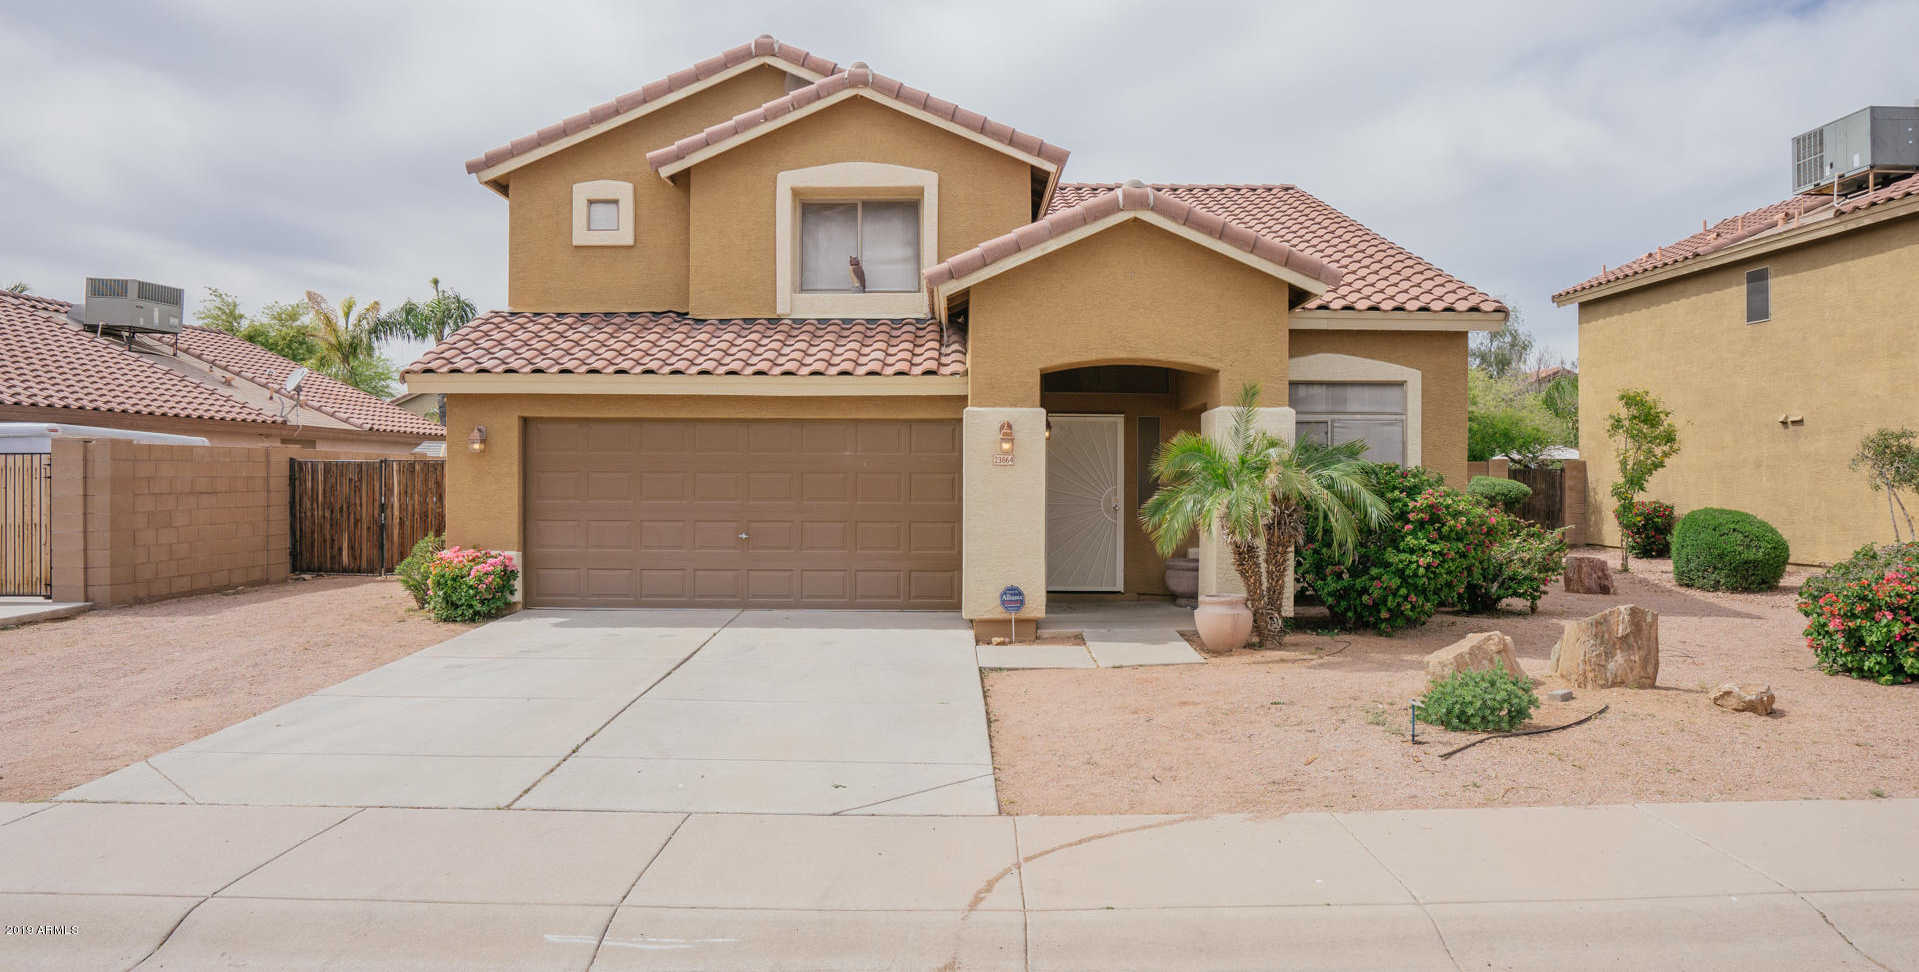 $310,000 - 3Br/3Ba - Home for Sale in Parcel 3b At North Canyon Ranch, Glendale